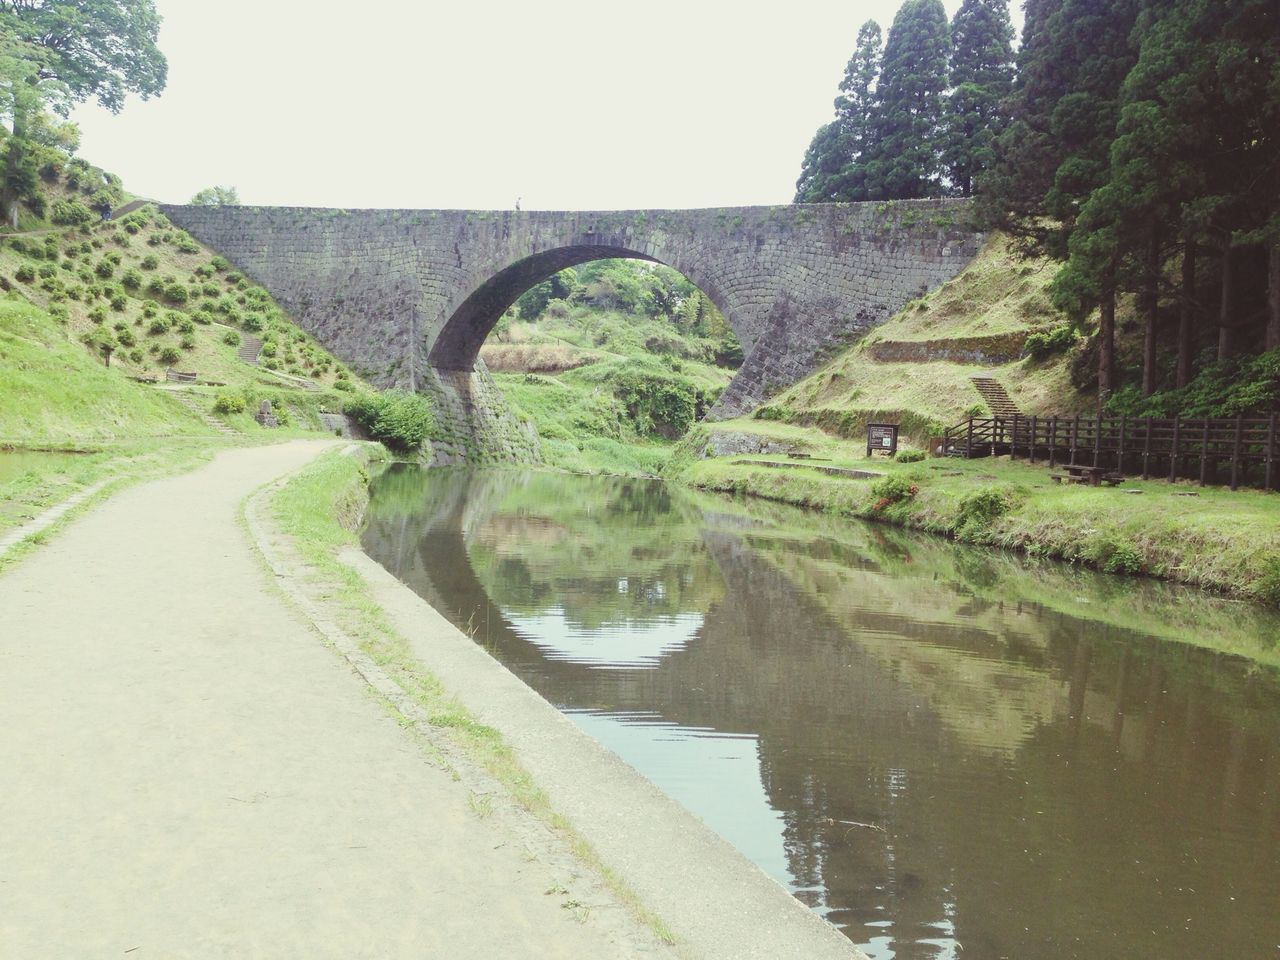 reflection, water, tree, day, arch, road, transportation, outdoors, no people, bridge - man made structure, nature, scenics, clear sky, architecture, sky